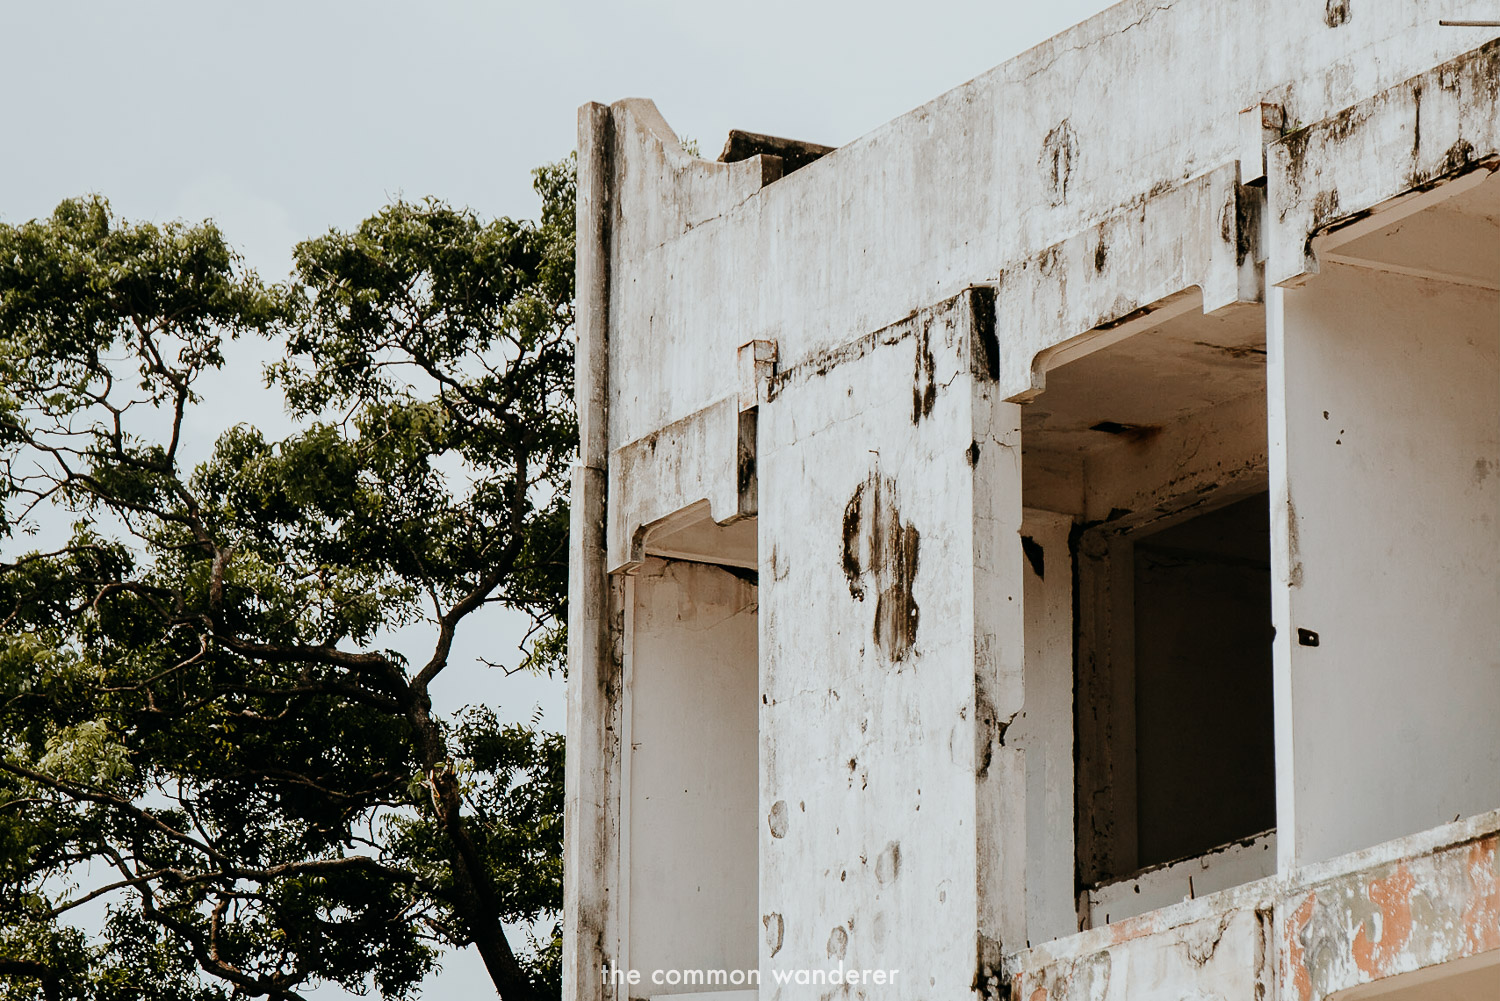 Damage from the Jaffna war is still present on some buildings in Jaffna